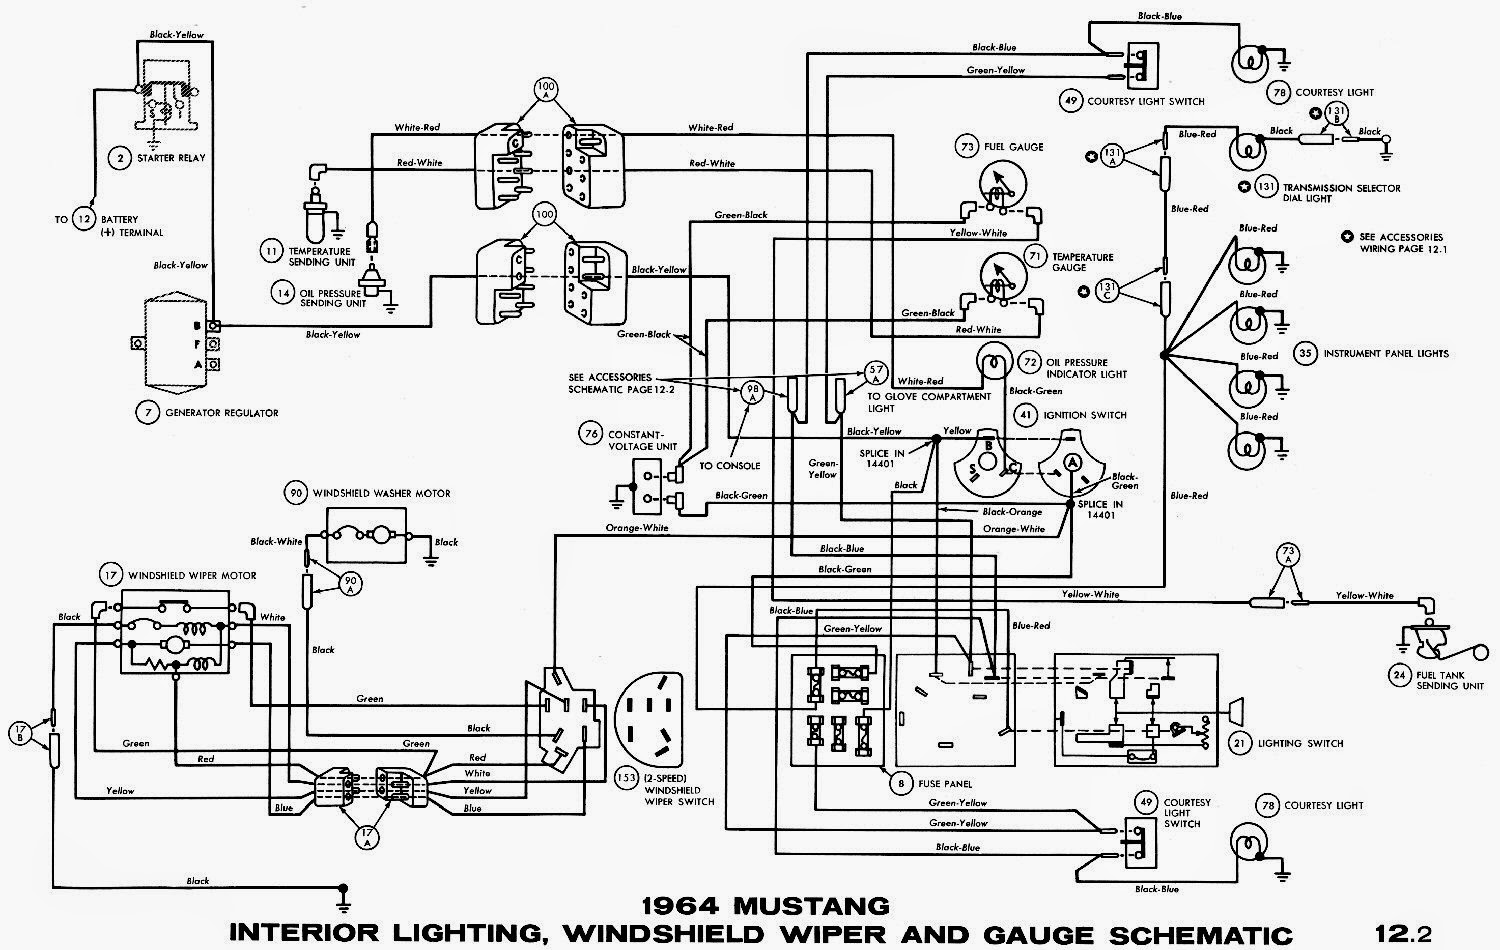 85 mustang ignition switch wiring diagram